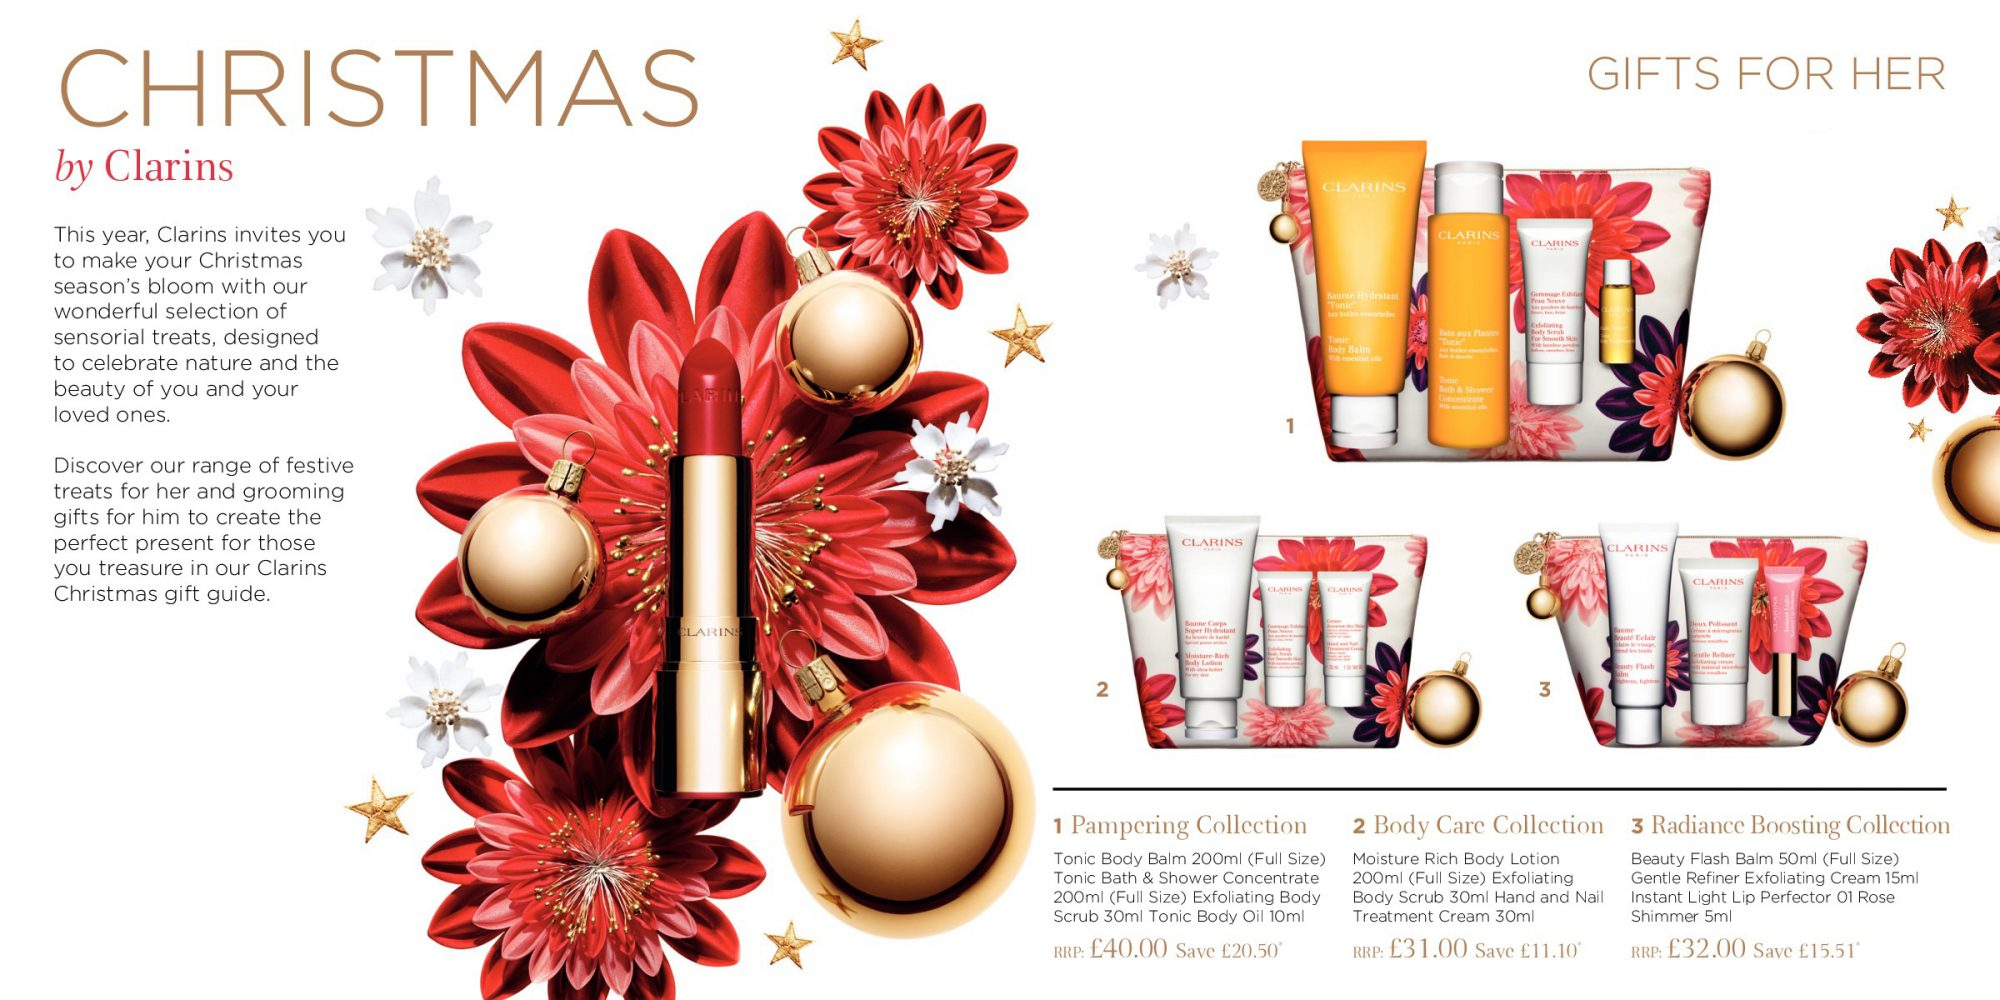 Clarins Brochure Christmas Gifts Spread 1 - Gifts for Her and Visual 2018